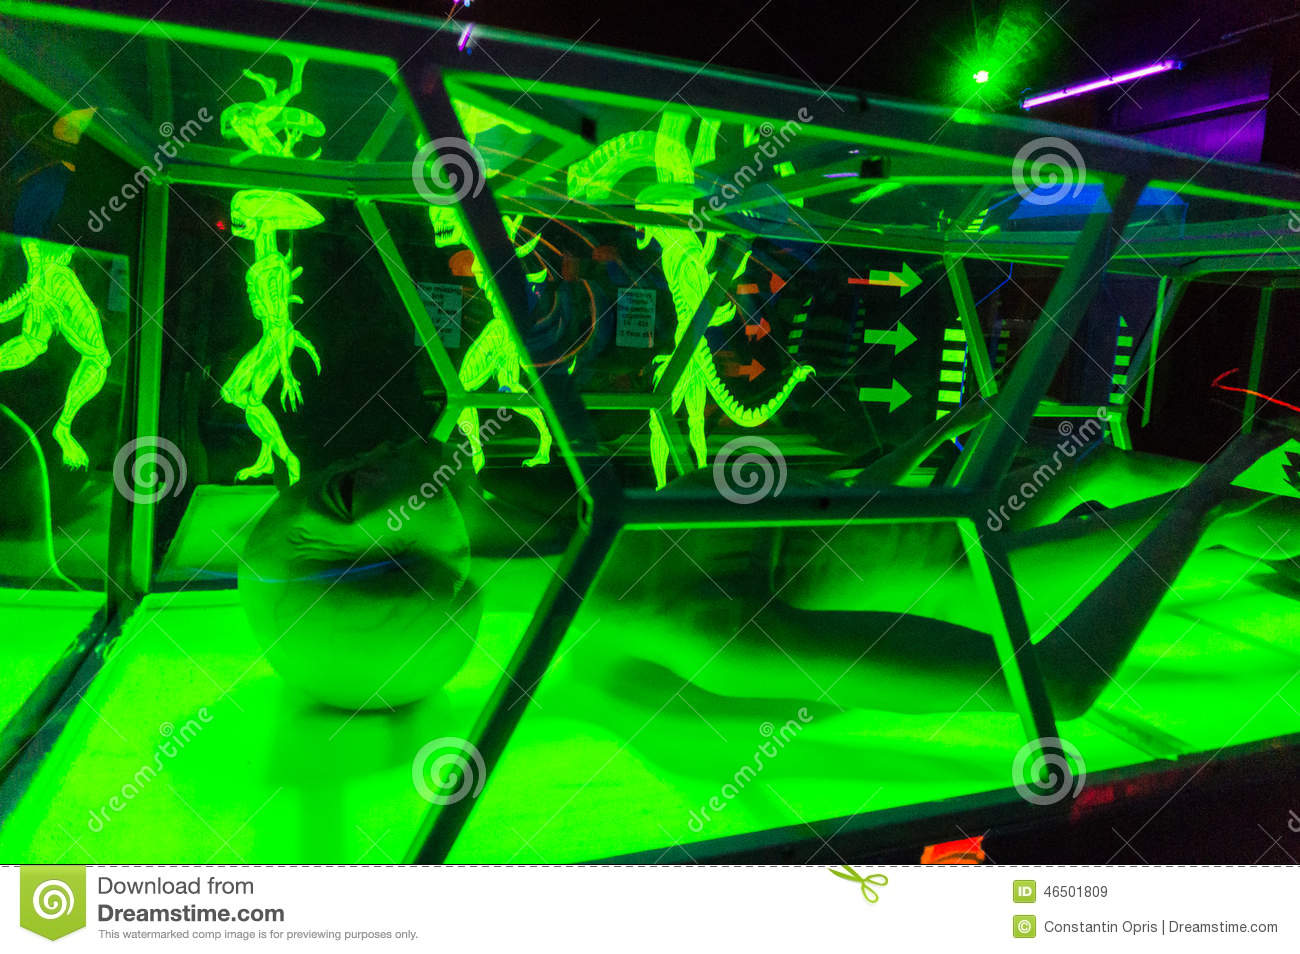 Aliens in game room editorial stock image image 46501809 for Alien decoration